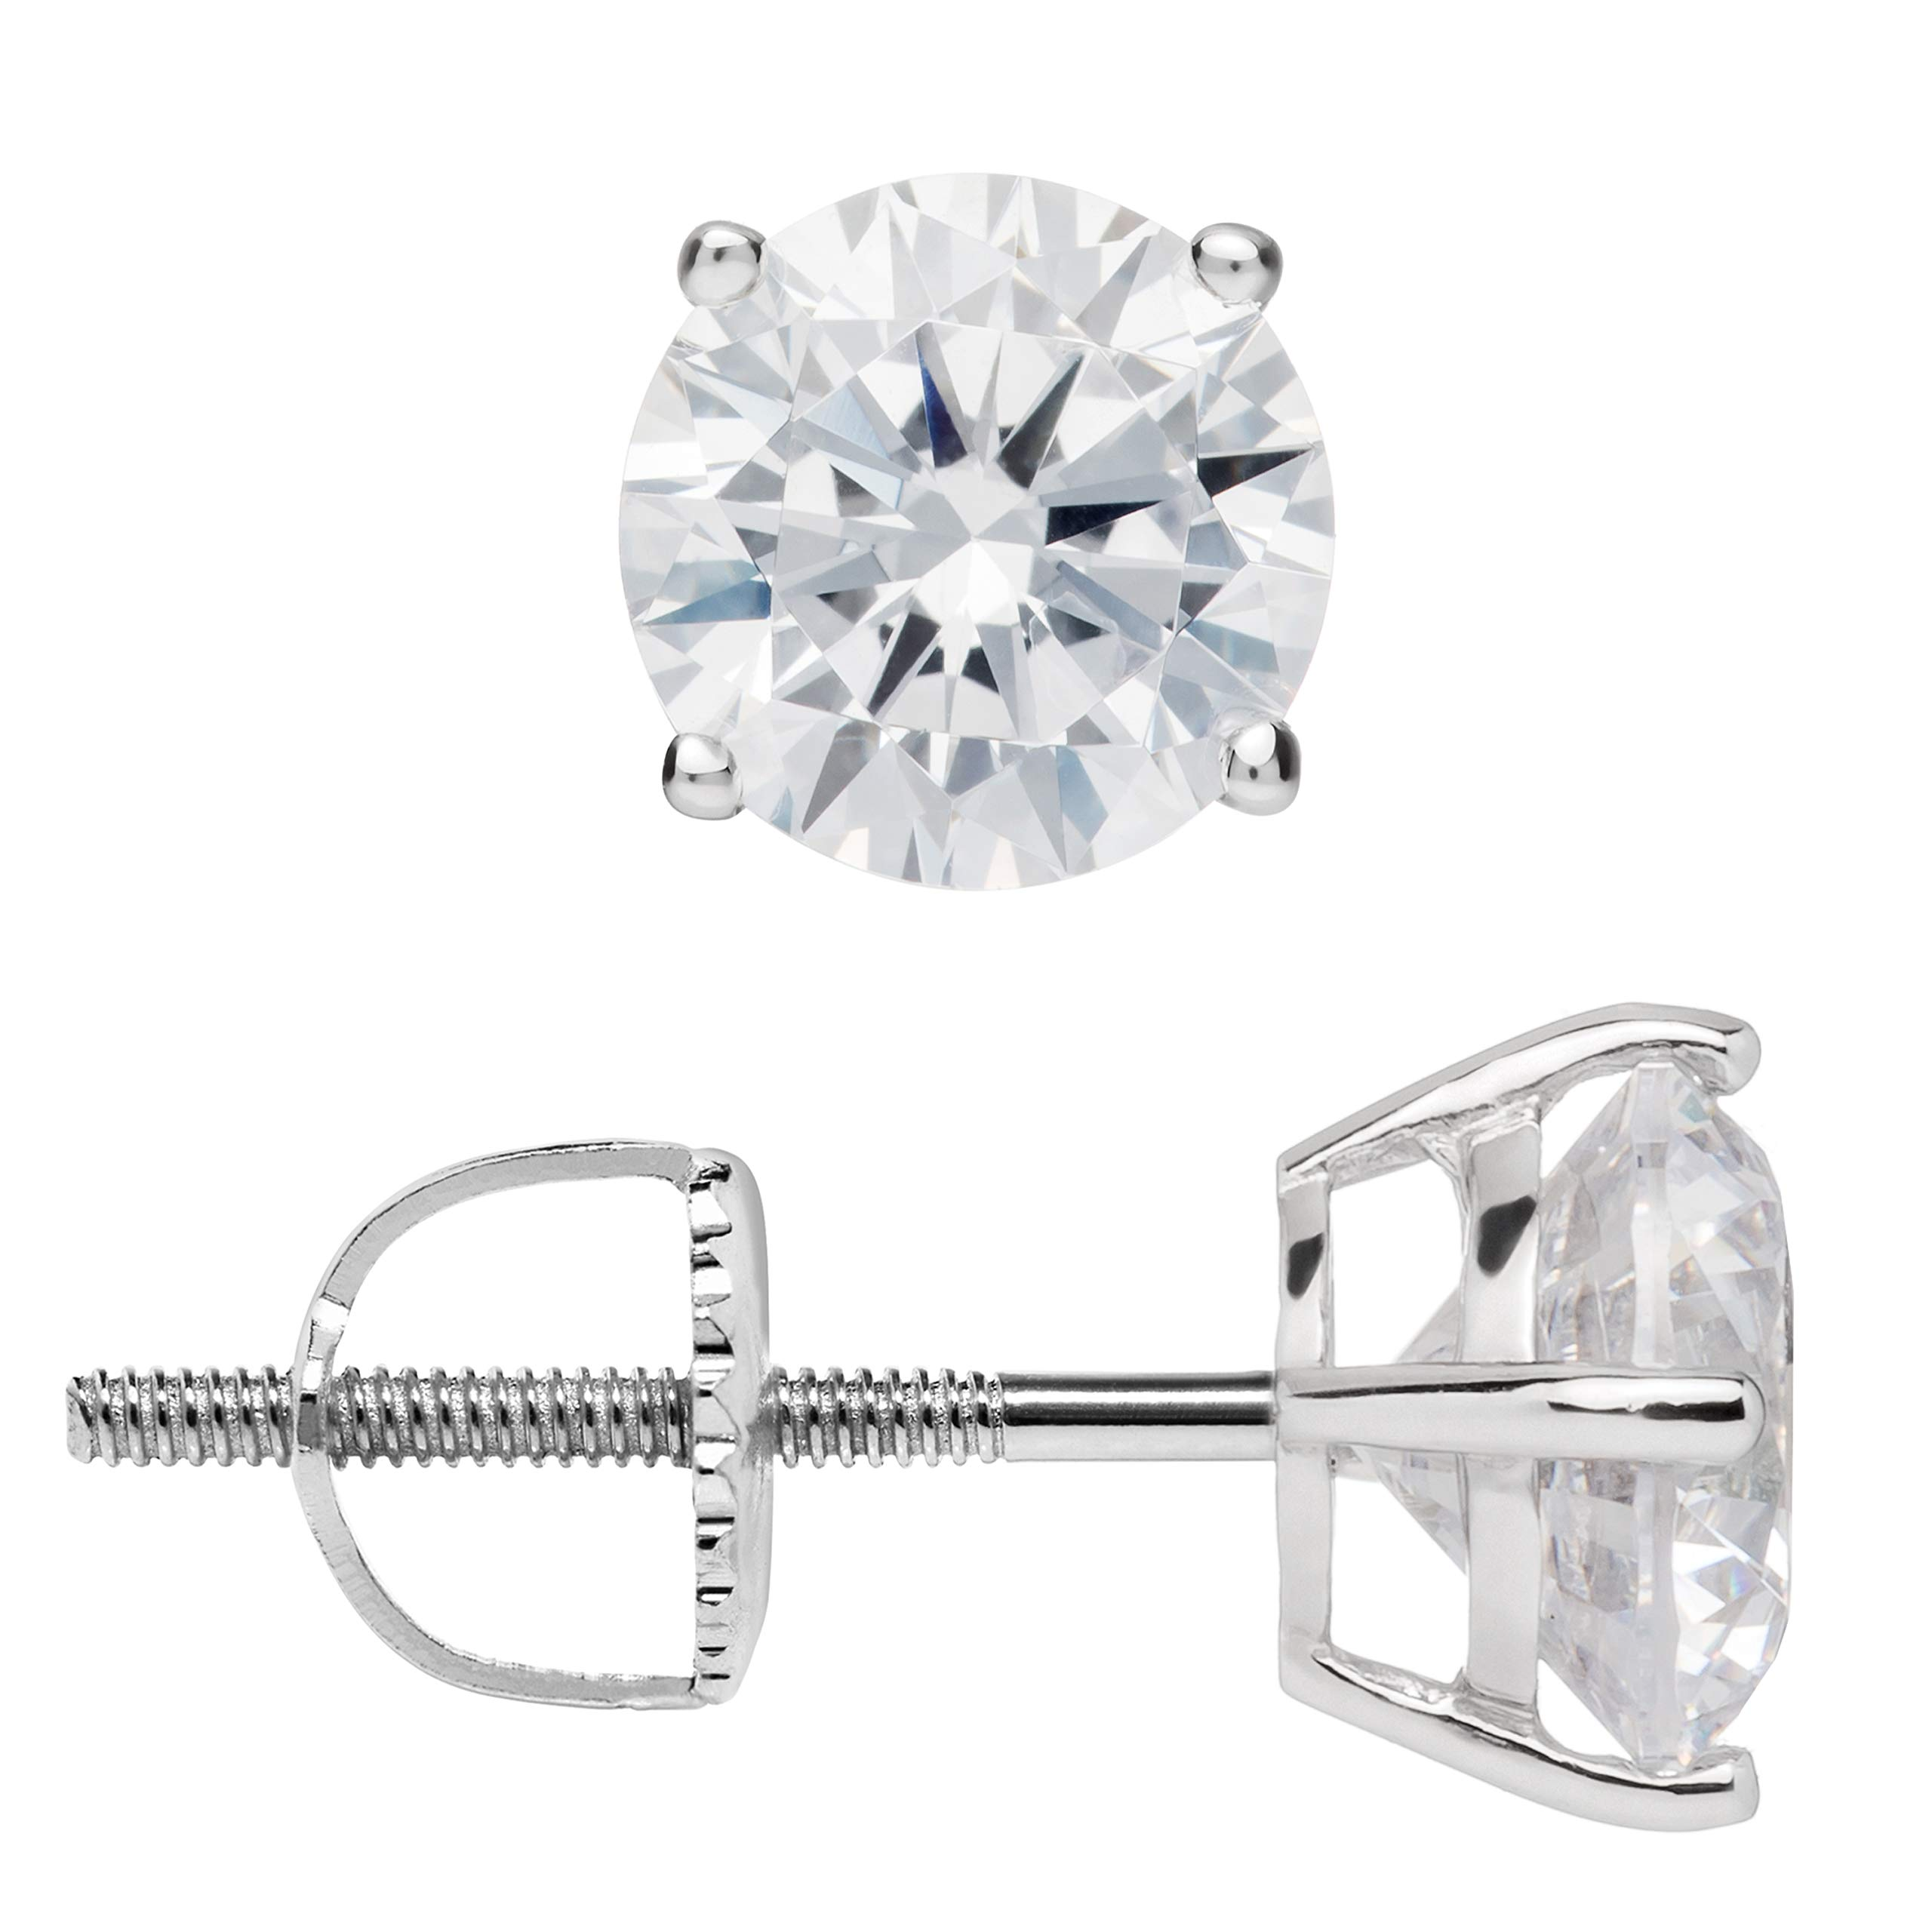 14K Solid White Gold Stud Earrings | Round Cut Cubic Zirconia | Screw Back Posts | 2.0 CTW | With Gift Box by Everyday Elegance Jewelry